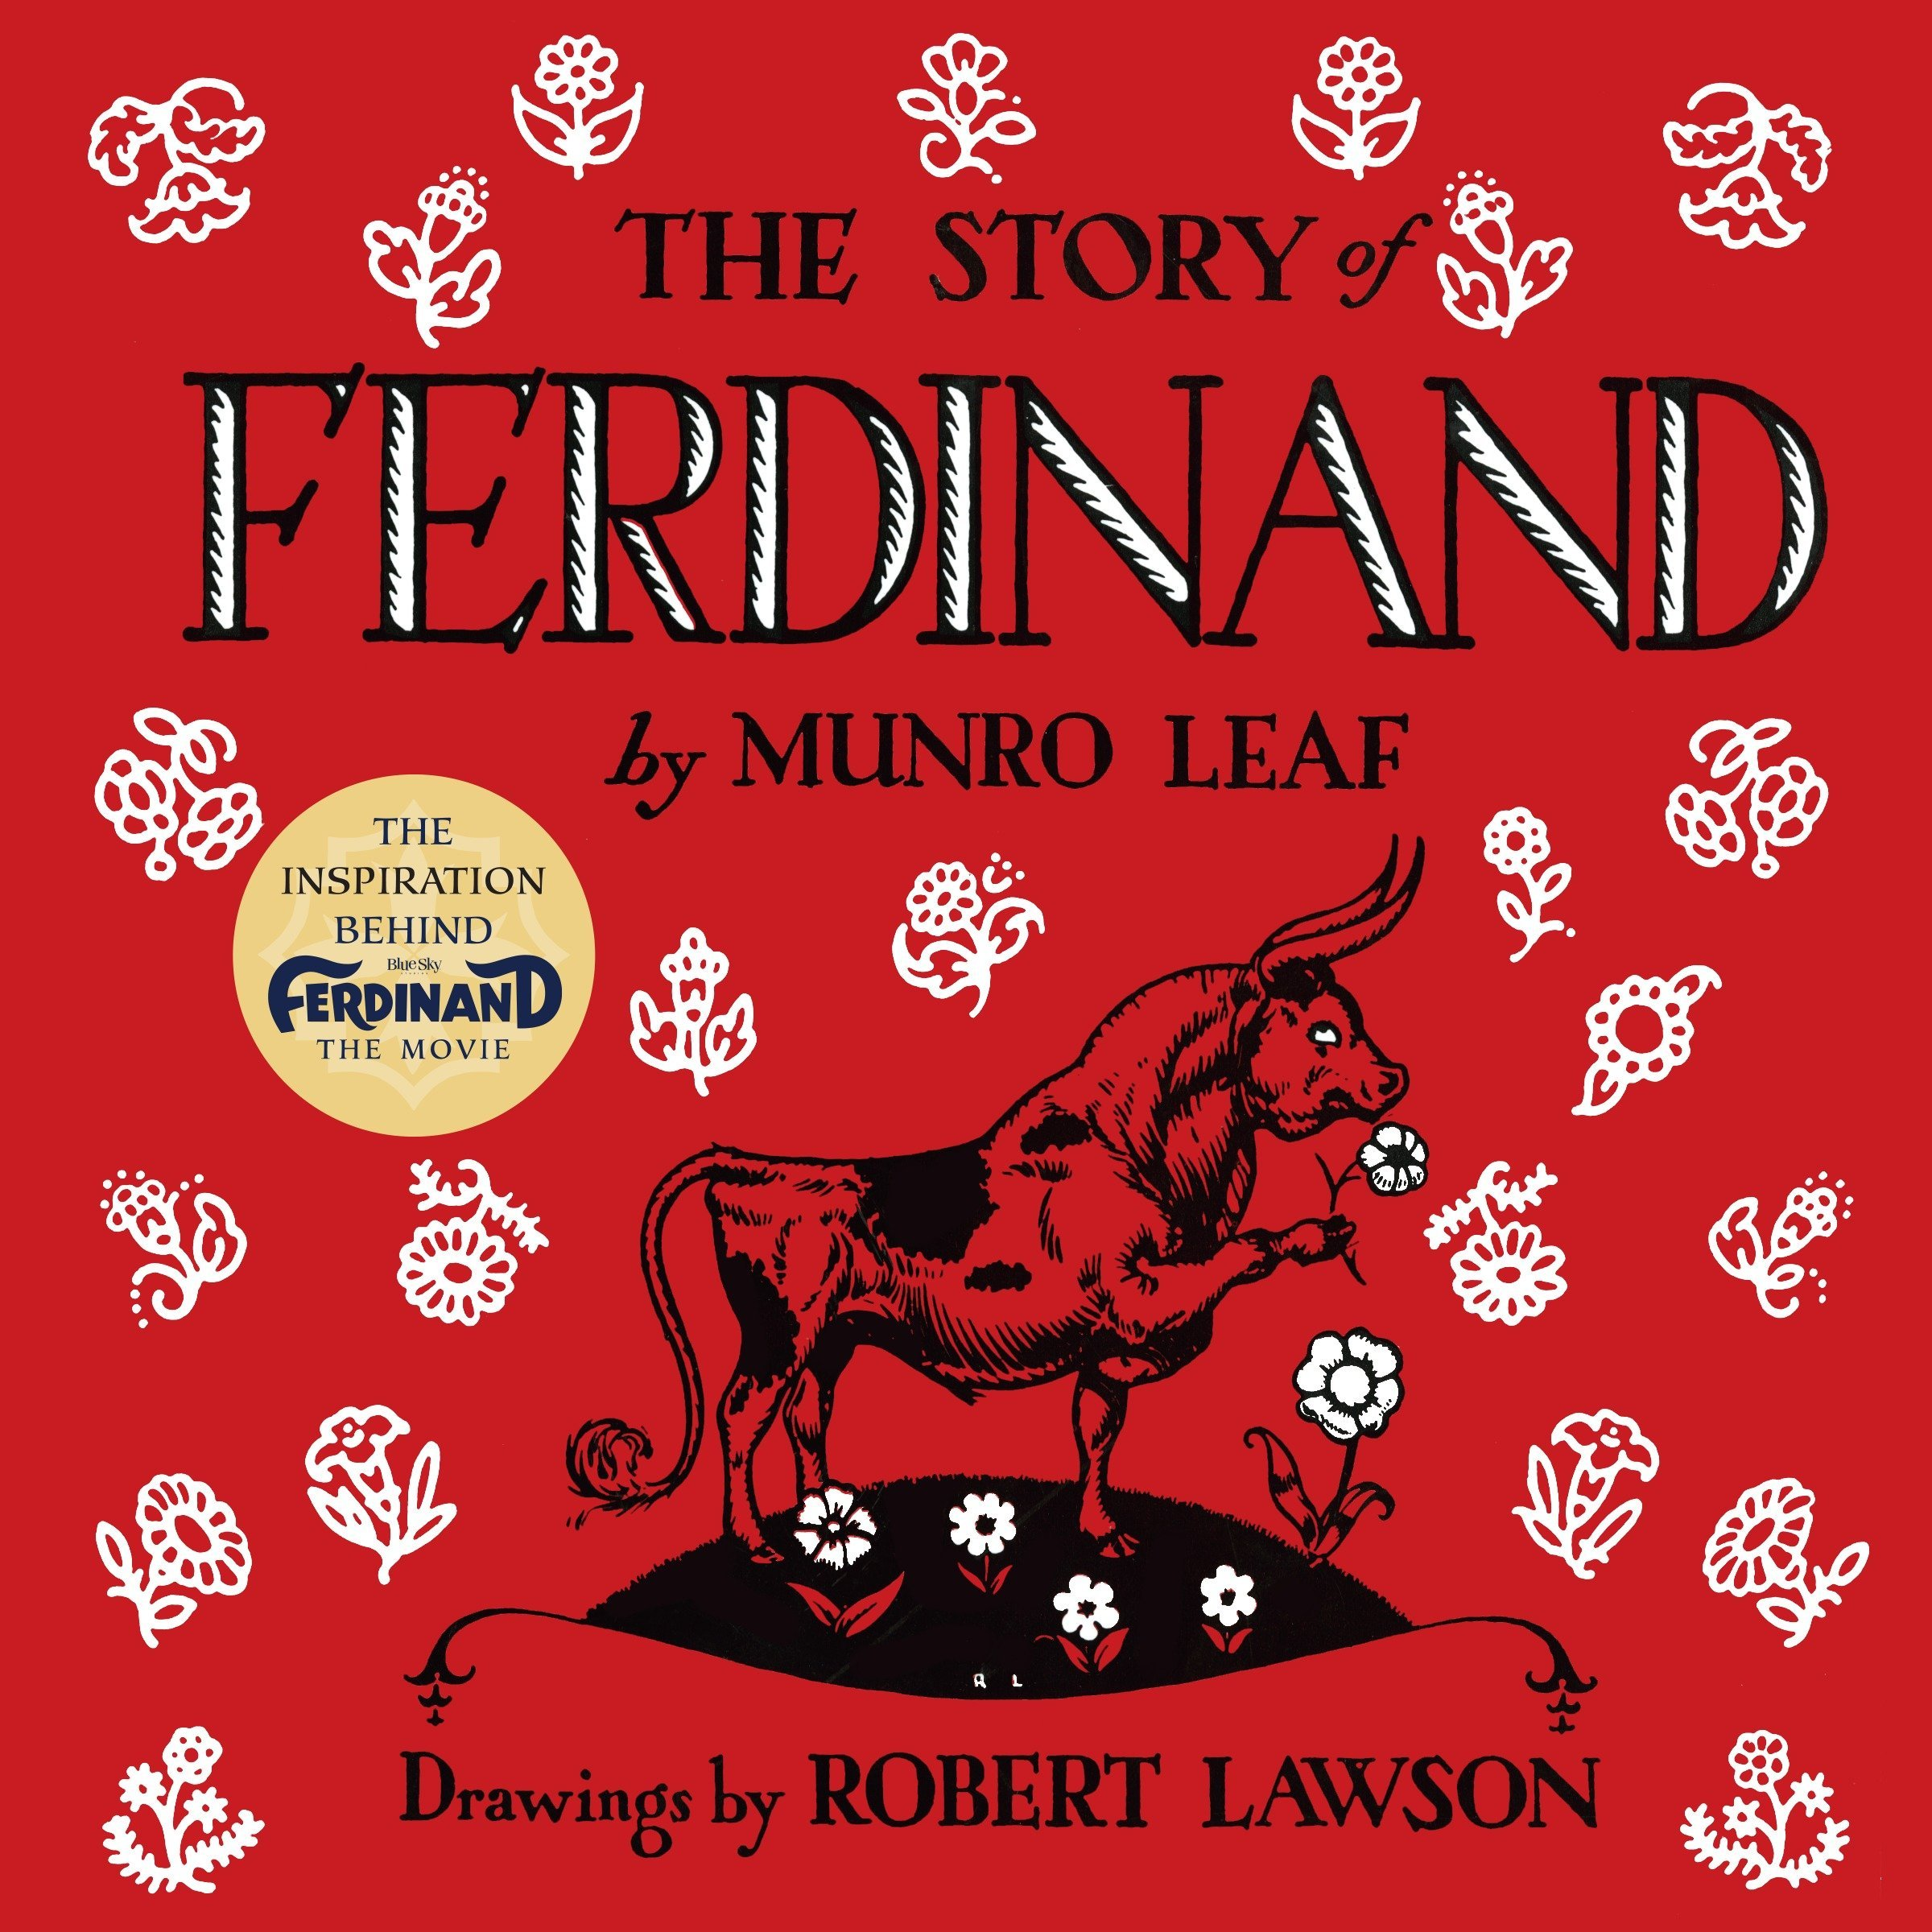 Picture Books that celebrate being yourself - the story of ferdinand -.jpg